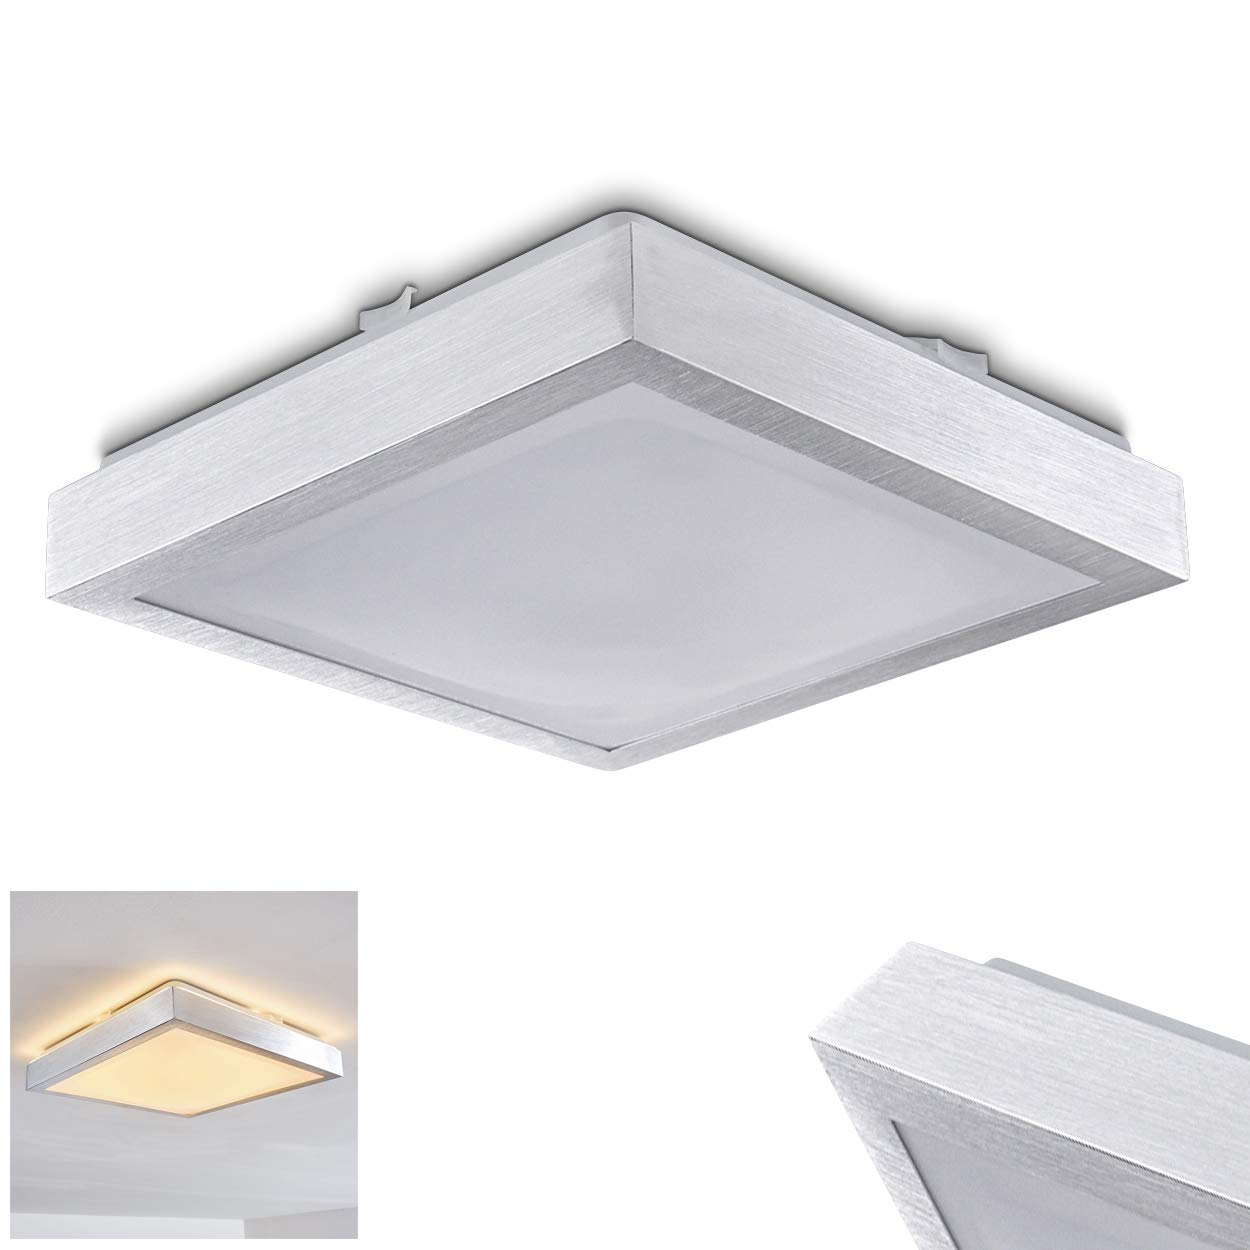 Led ceiling lamp wutach square led metal ceiling lamp in white bathroom lamp ceiling light corridor living room lamp dining room lamp 3000